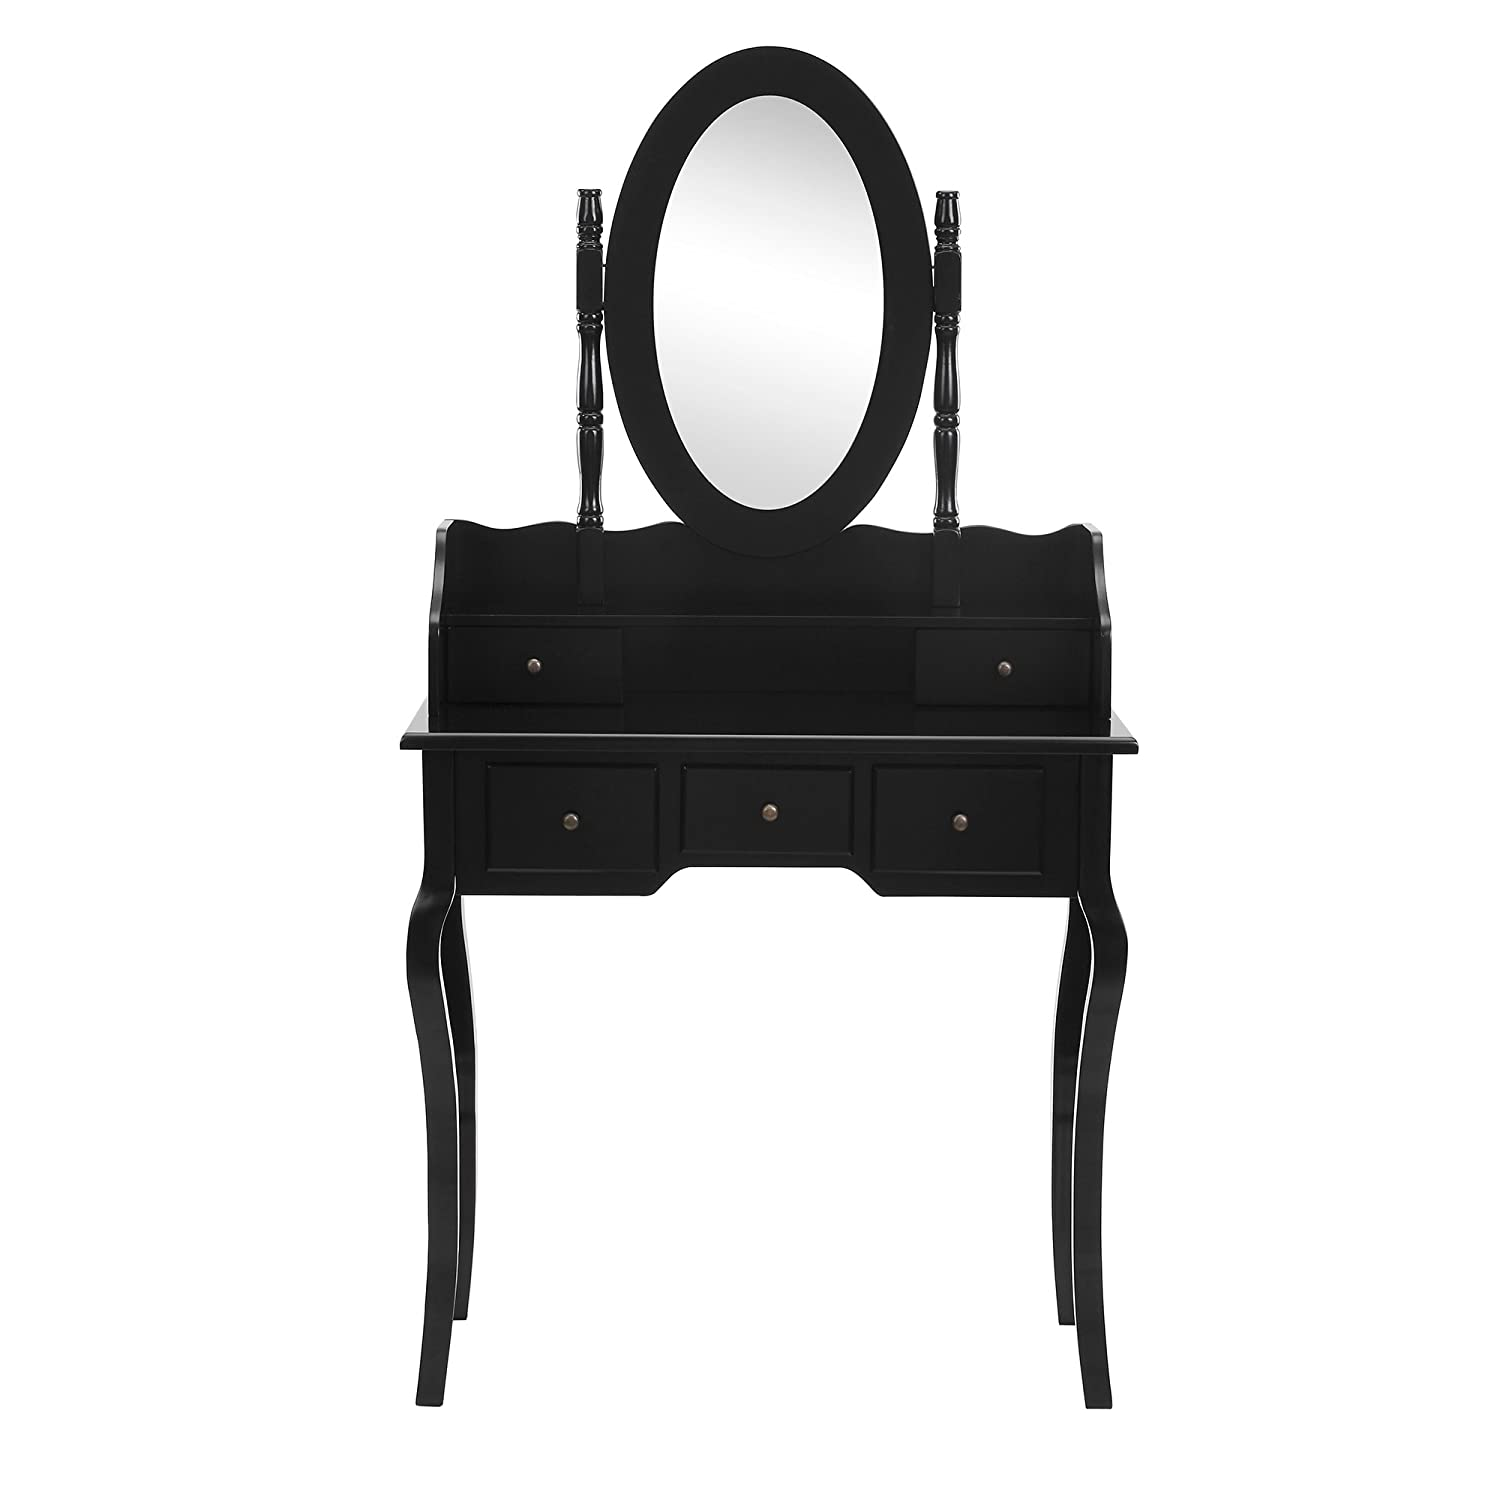 Beautify Bedroom Furniture Dressing Table Vanity Set Premium Black Oval Mirror with 5 Drawers